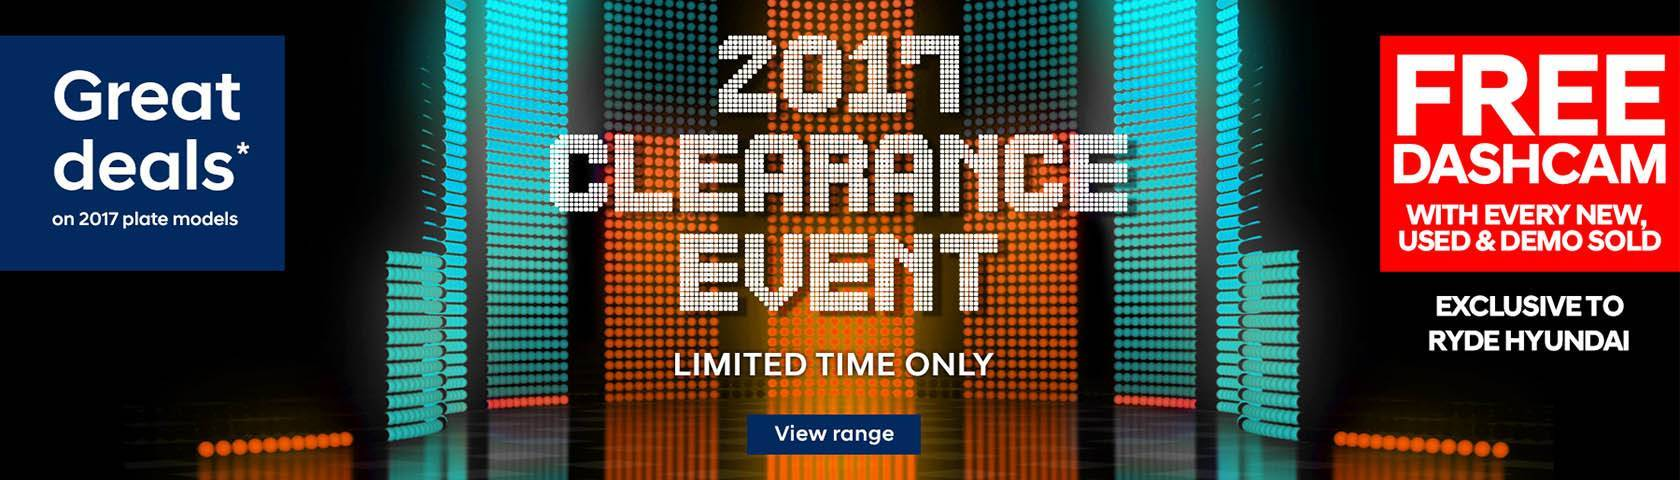 RydeHyundai-HPB-01-ClearanceEvent-Jan18-SL